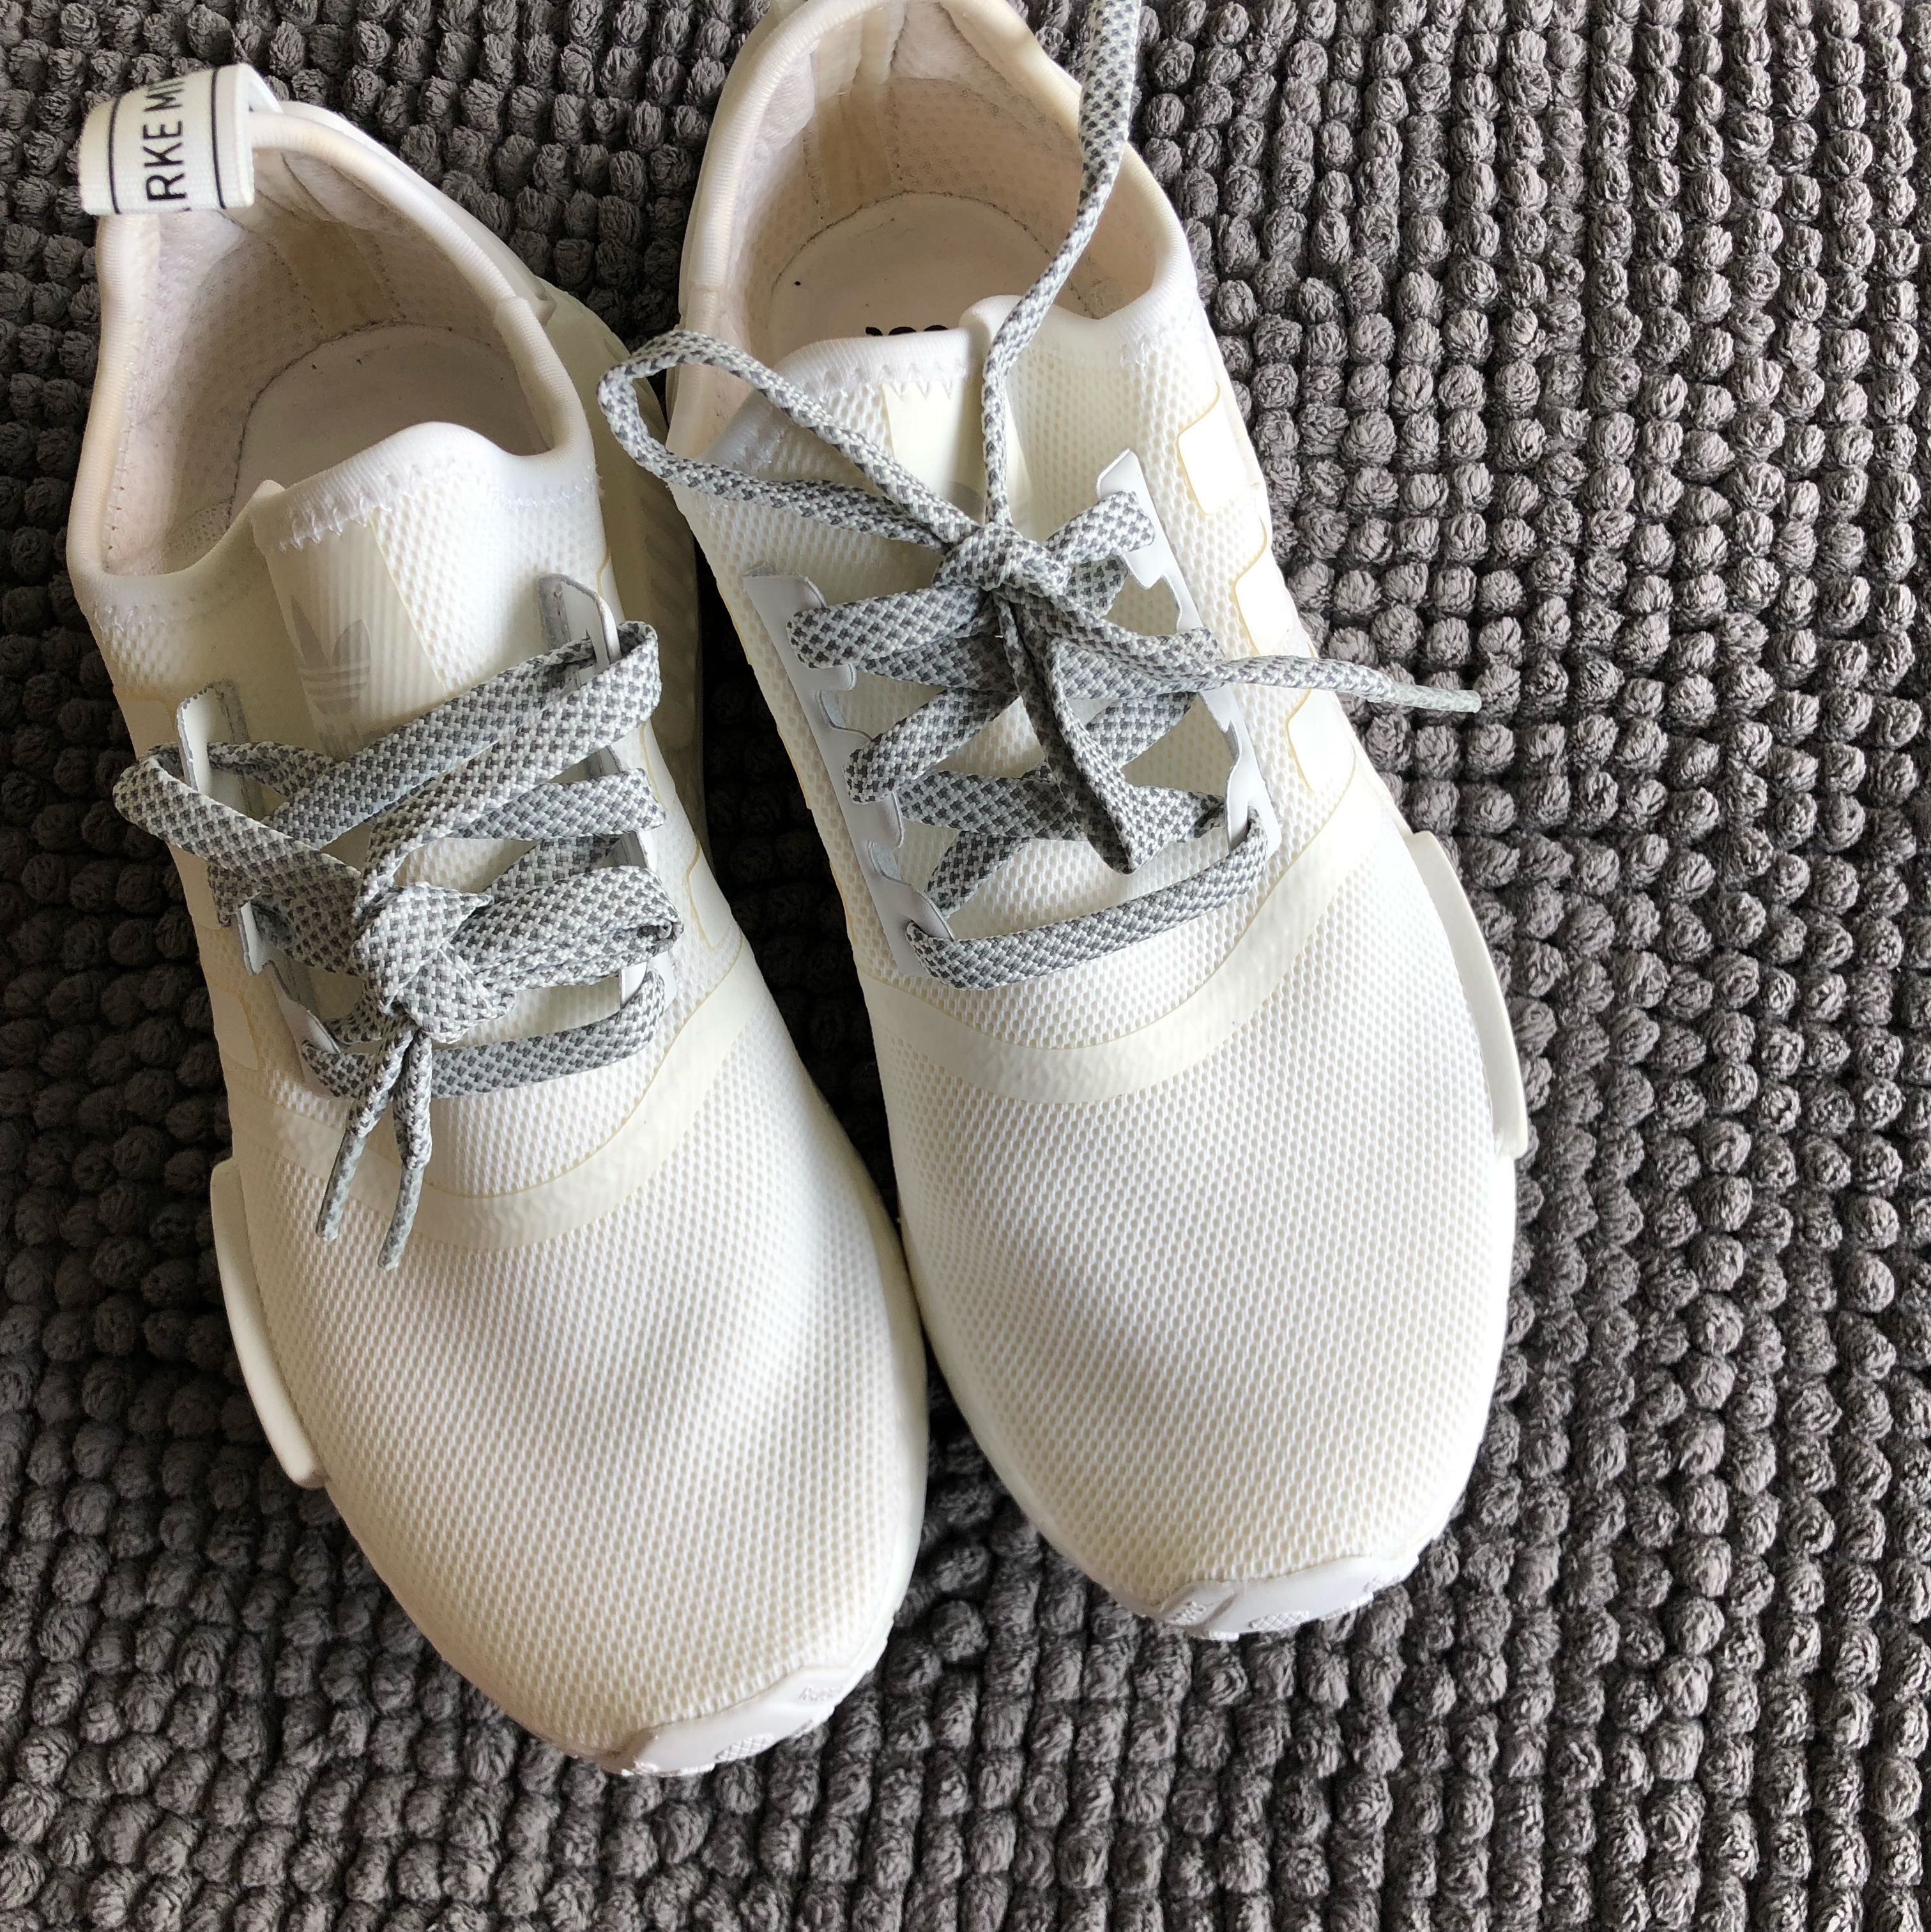 hot sale online 09a4a 6ff29 Home · Women s Fashion · Shoes · Sneakers. photo photo ...